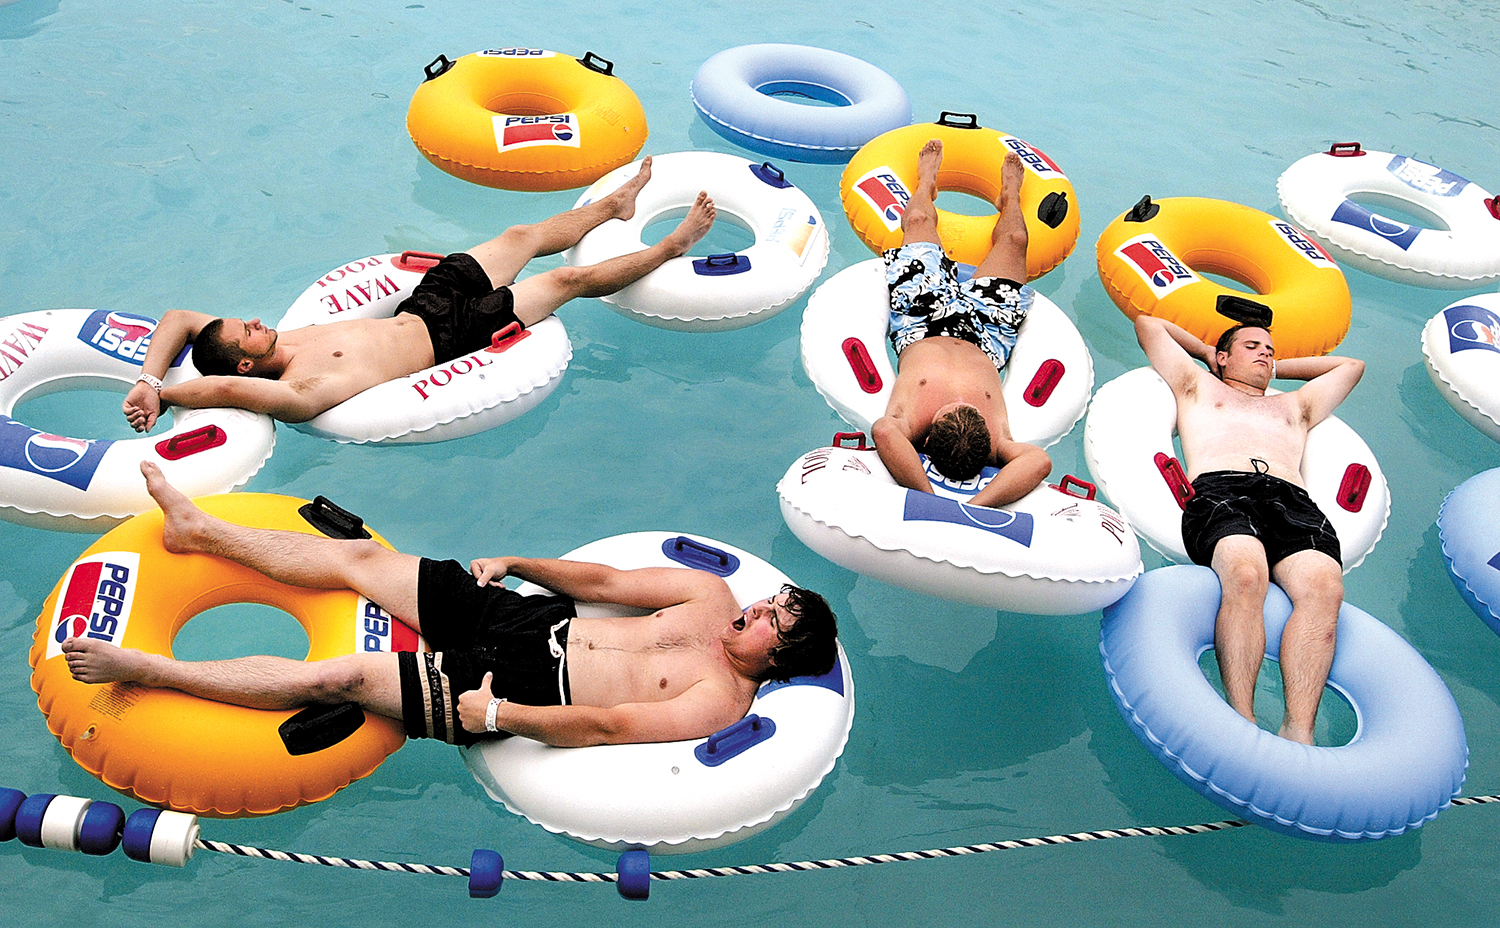 Springfield Rifles baseball players, from left, Joey Alesmeyer, Joe Hayden, Kellen Marshall and Joe Hulett take a day off from training to float in the wave pool at Knight's Action Park. Michael Brown/The State Journal-Register